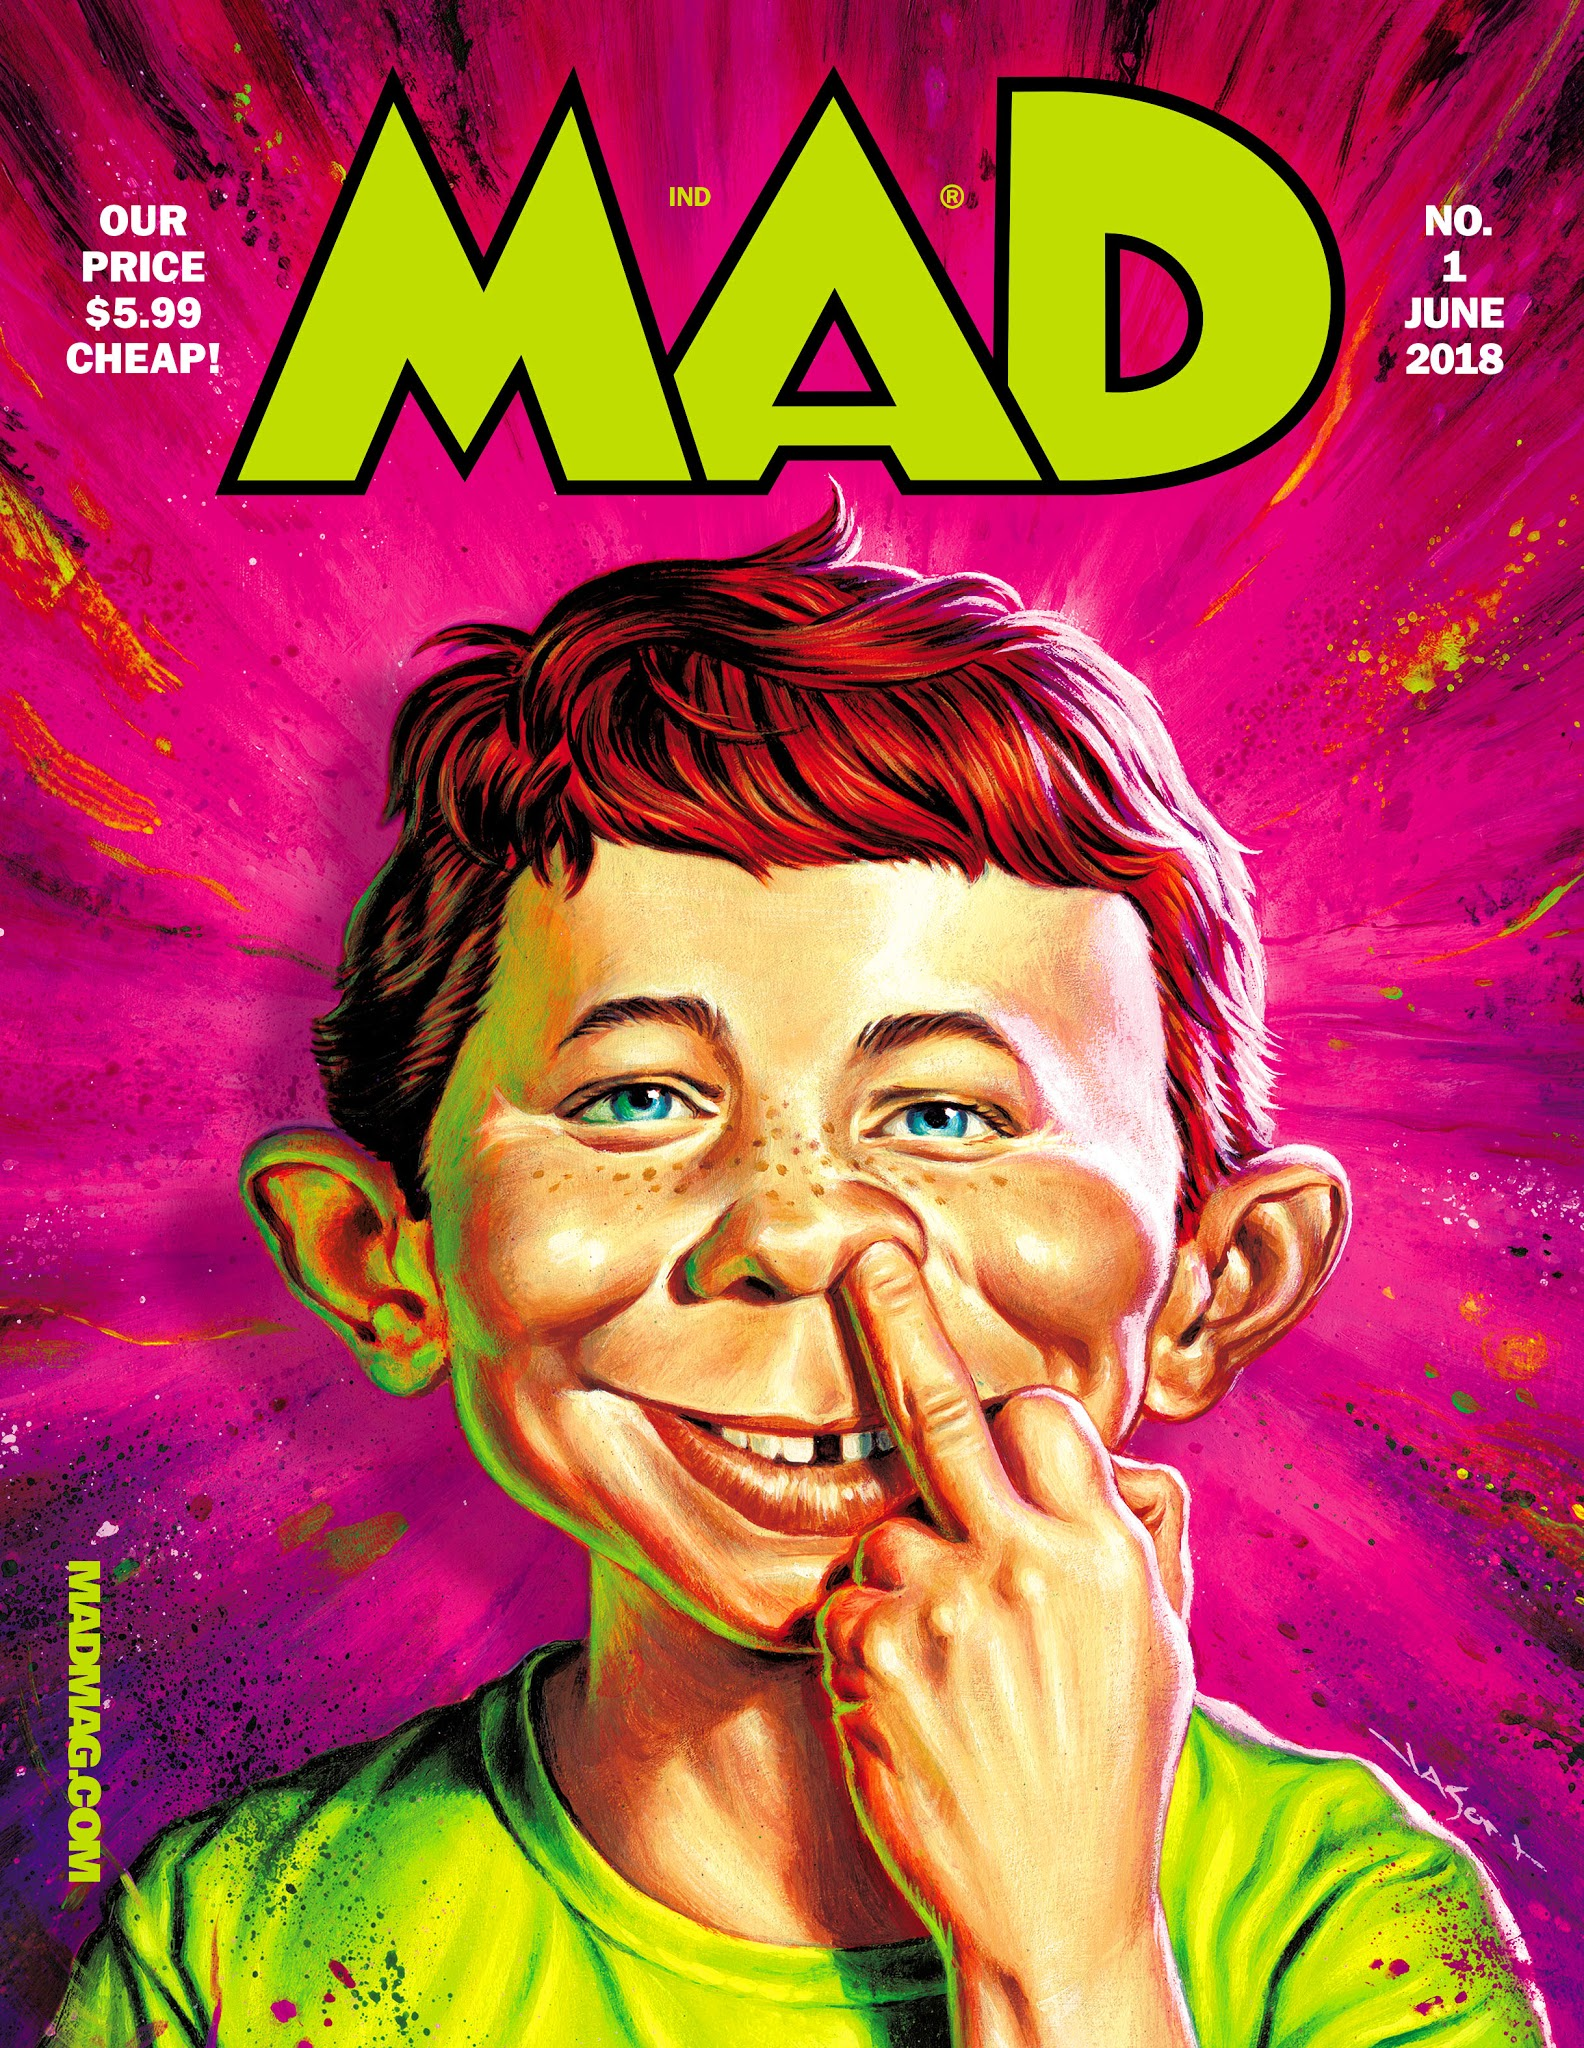 Mad Magazine 1 (June 2018)